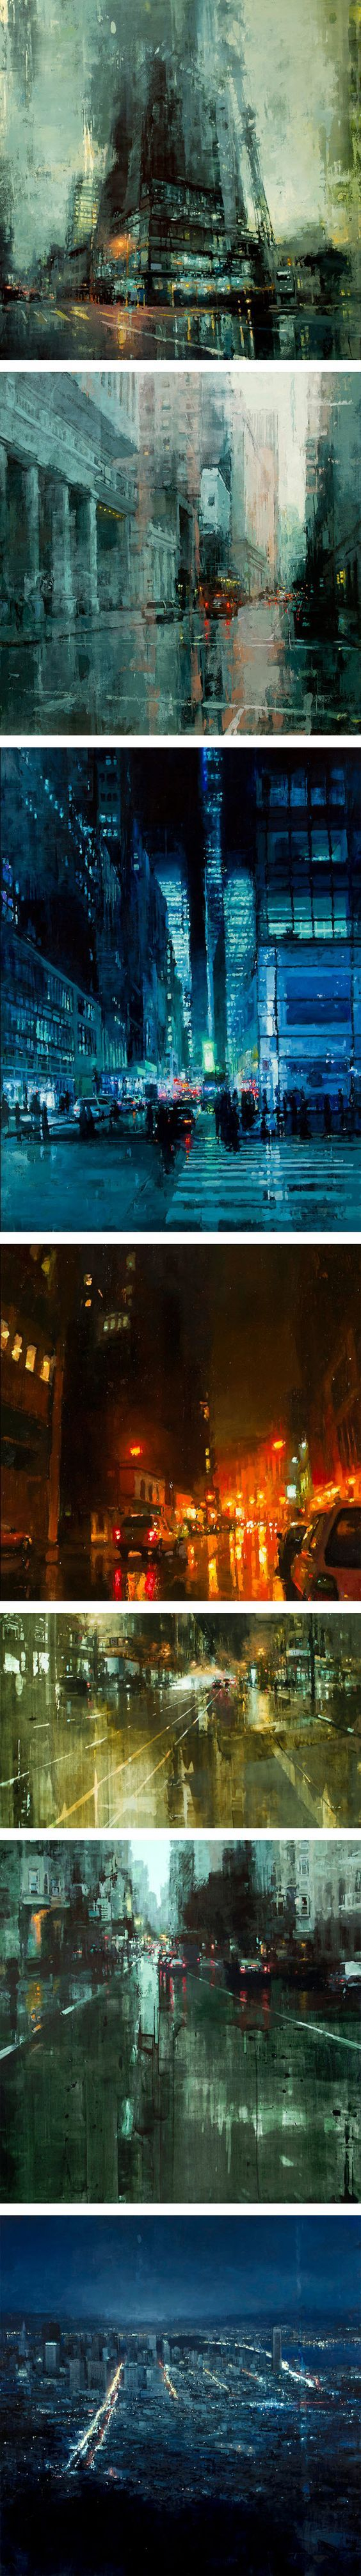 Cityscapes Painted with Oils by Jeremy Mann. via Monica Brorstad. Rain reflections, beautifully rendered.: